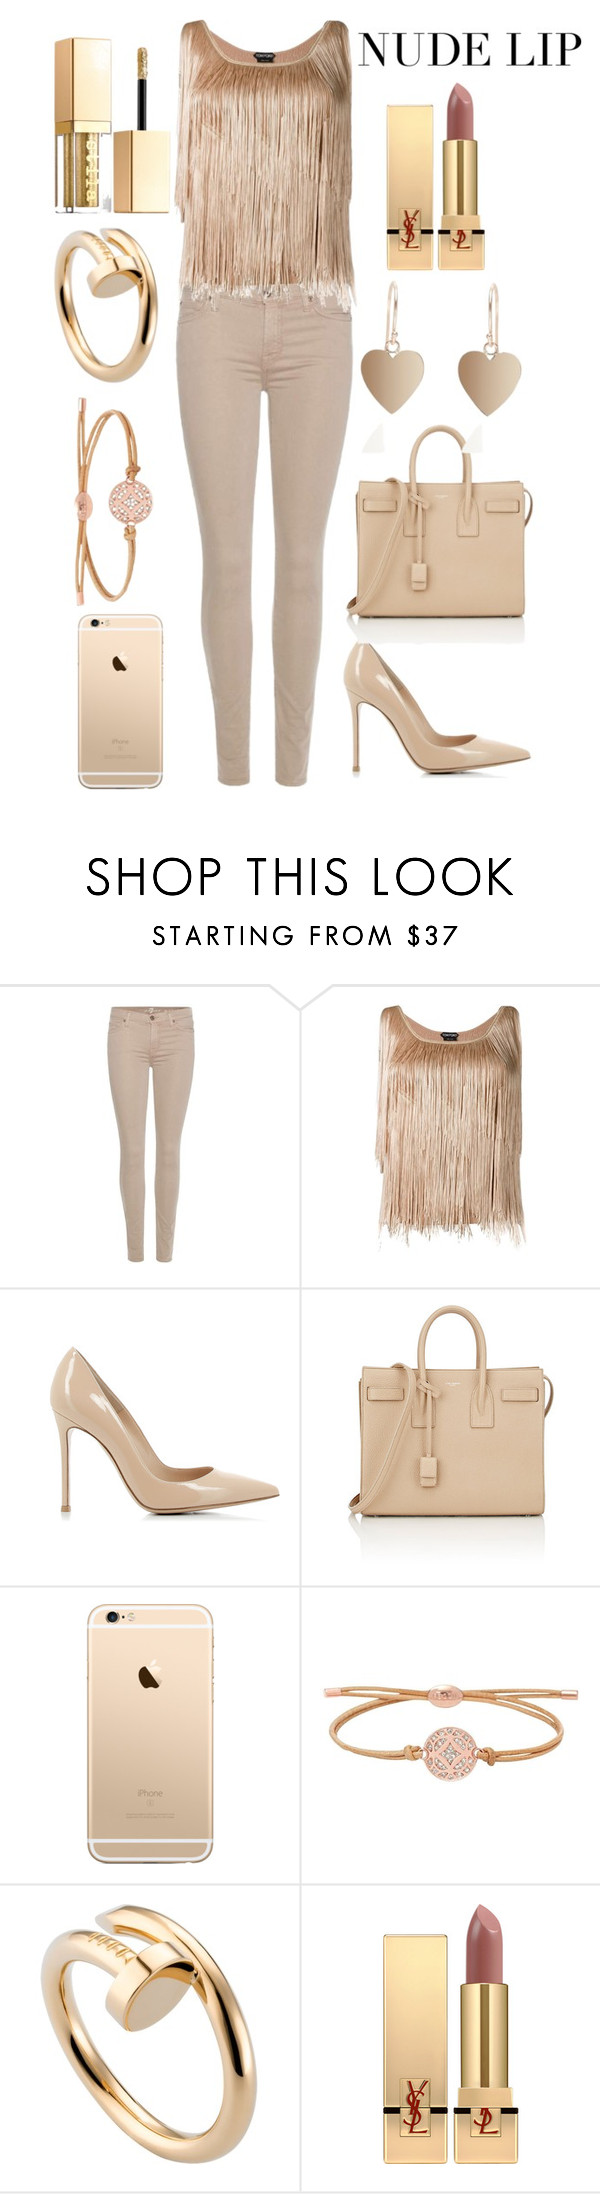 """nude lip"" by priyaarun ❤ liked on Polyvore featuring beauty, 7 For All Mankind, Tom Ford, Gianvito Rossi, Yves Saint Laurent, FOSSIL, Cartier and Stila"